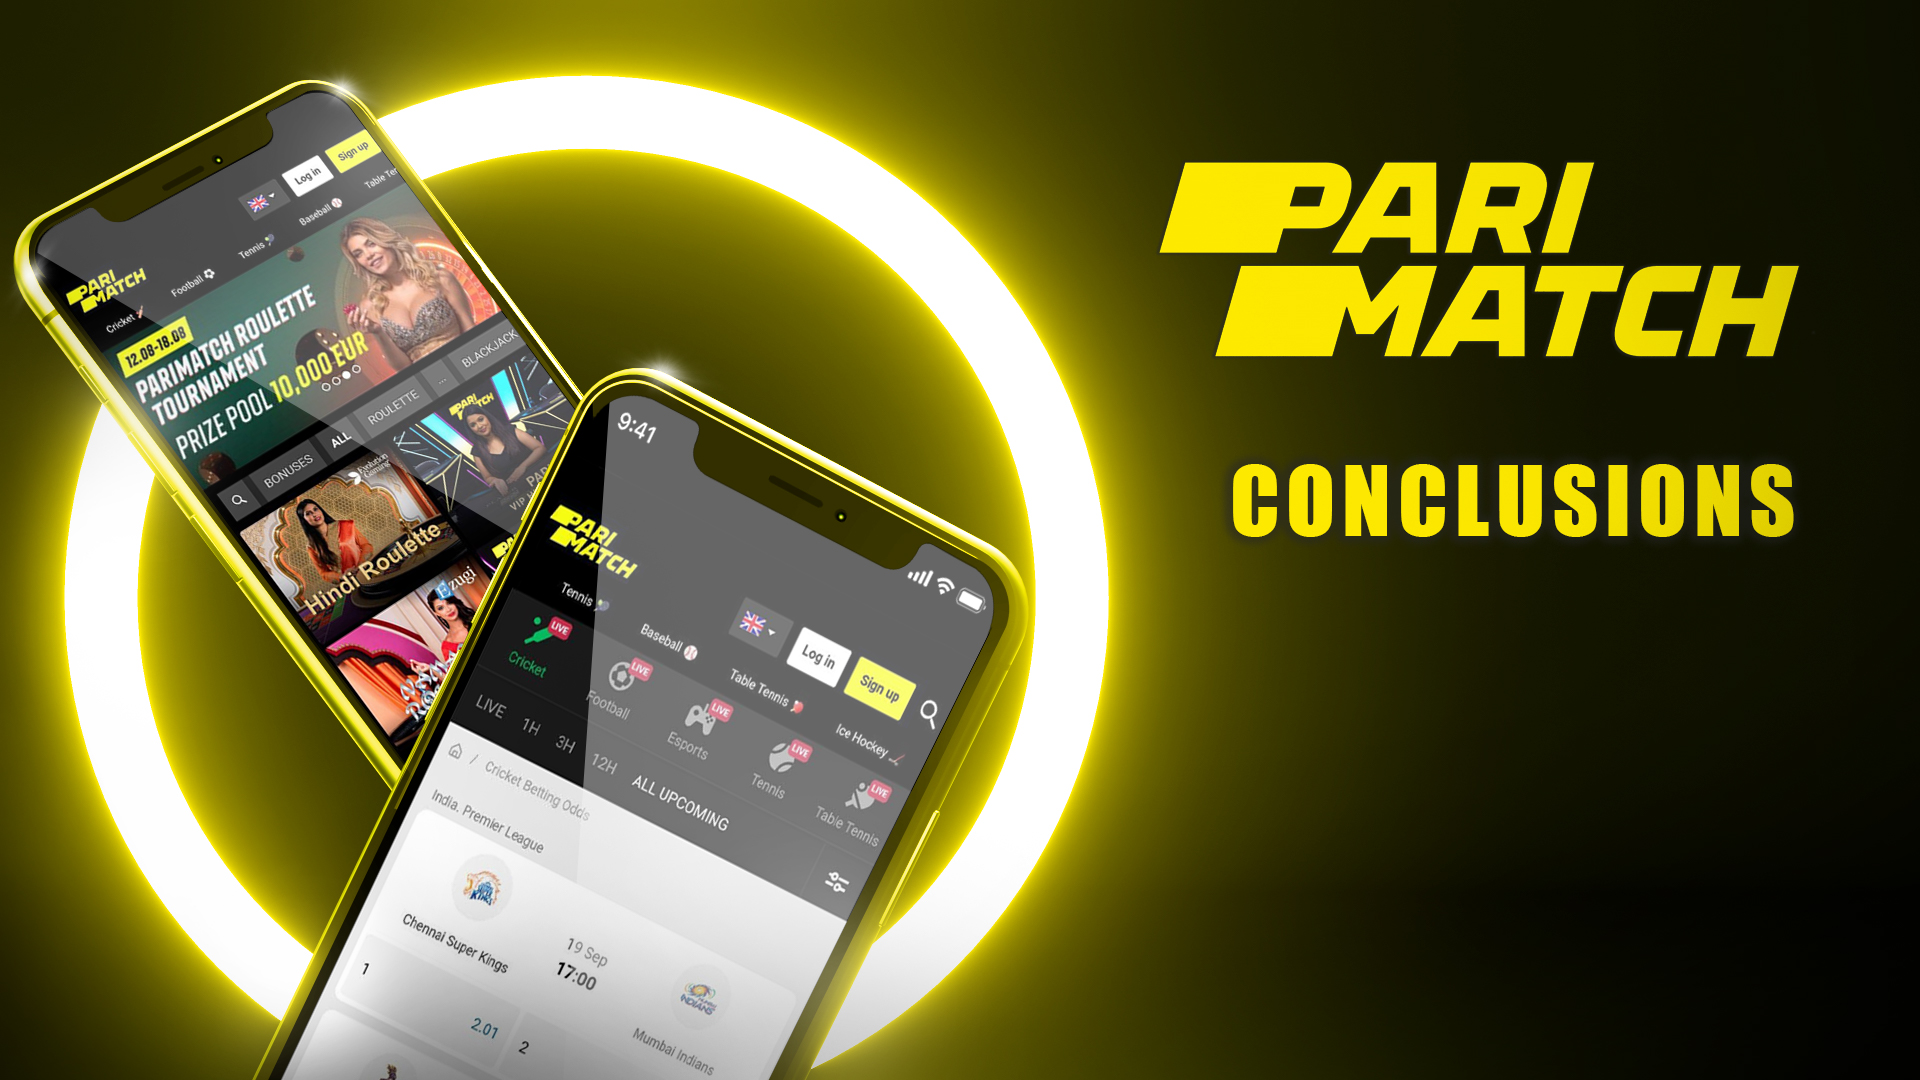 The PariMatch team developed a great mobile app for iOS and Android with lots of functions and features.